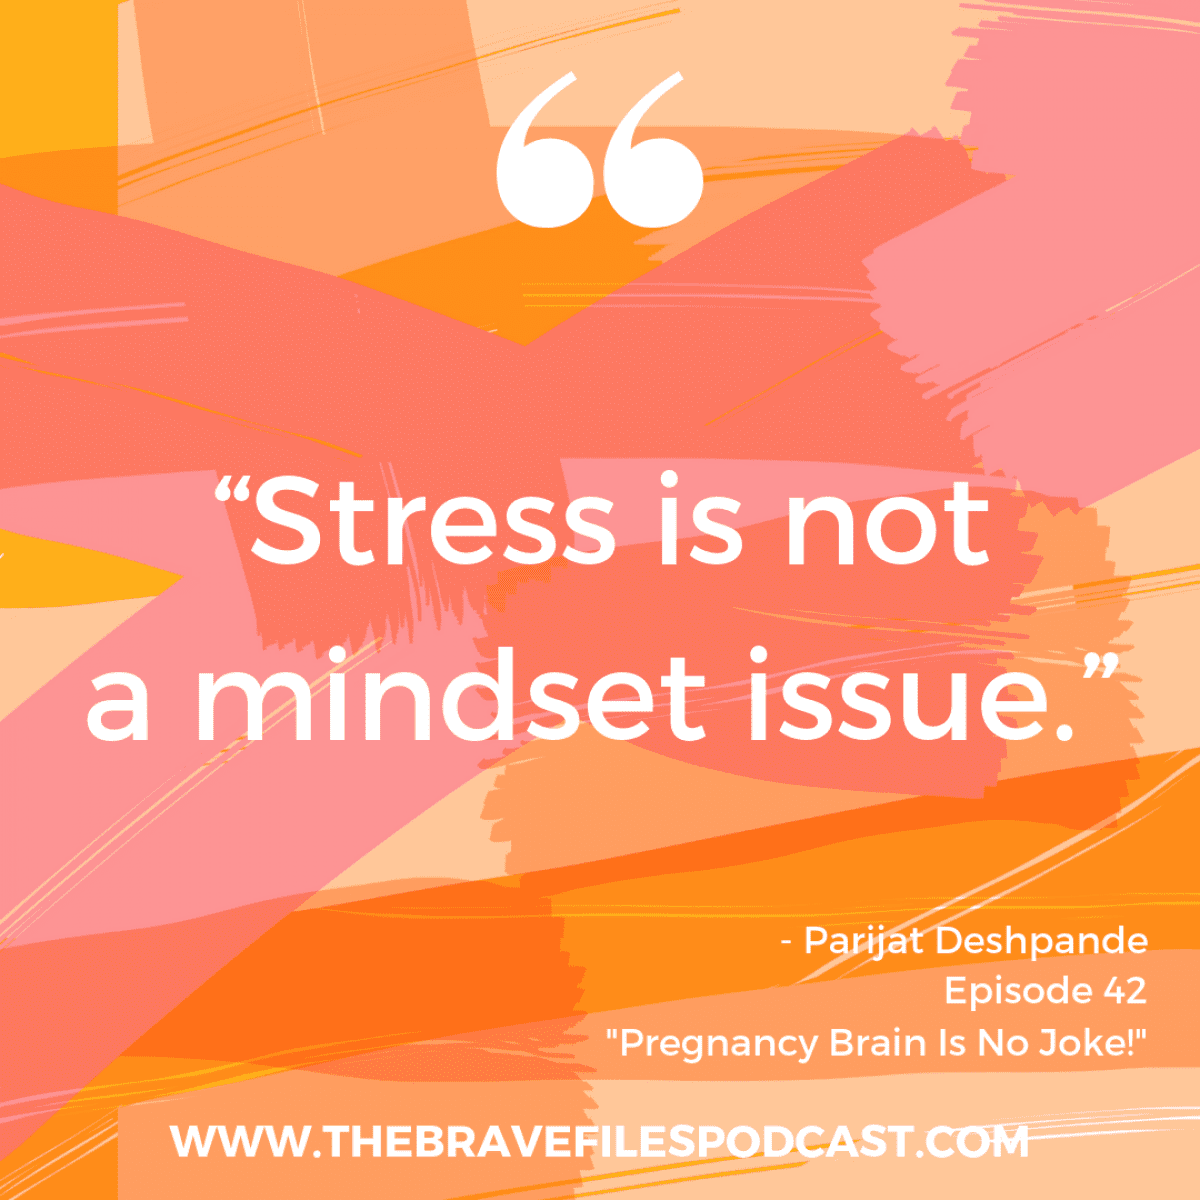 Parijat Deshpande talks to Heather Vickery about managing stress. It's more than mindset! The Brave Files Podcast.